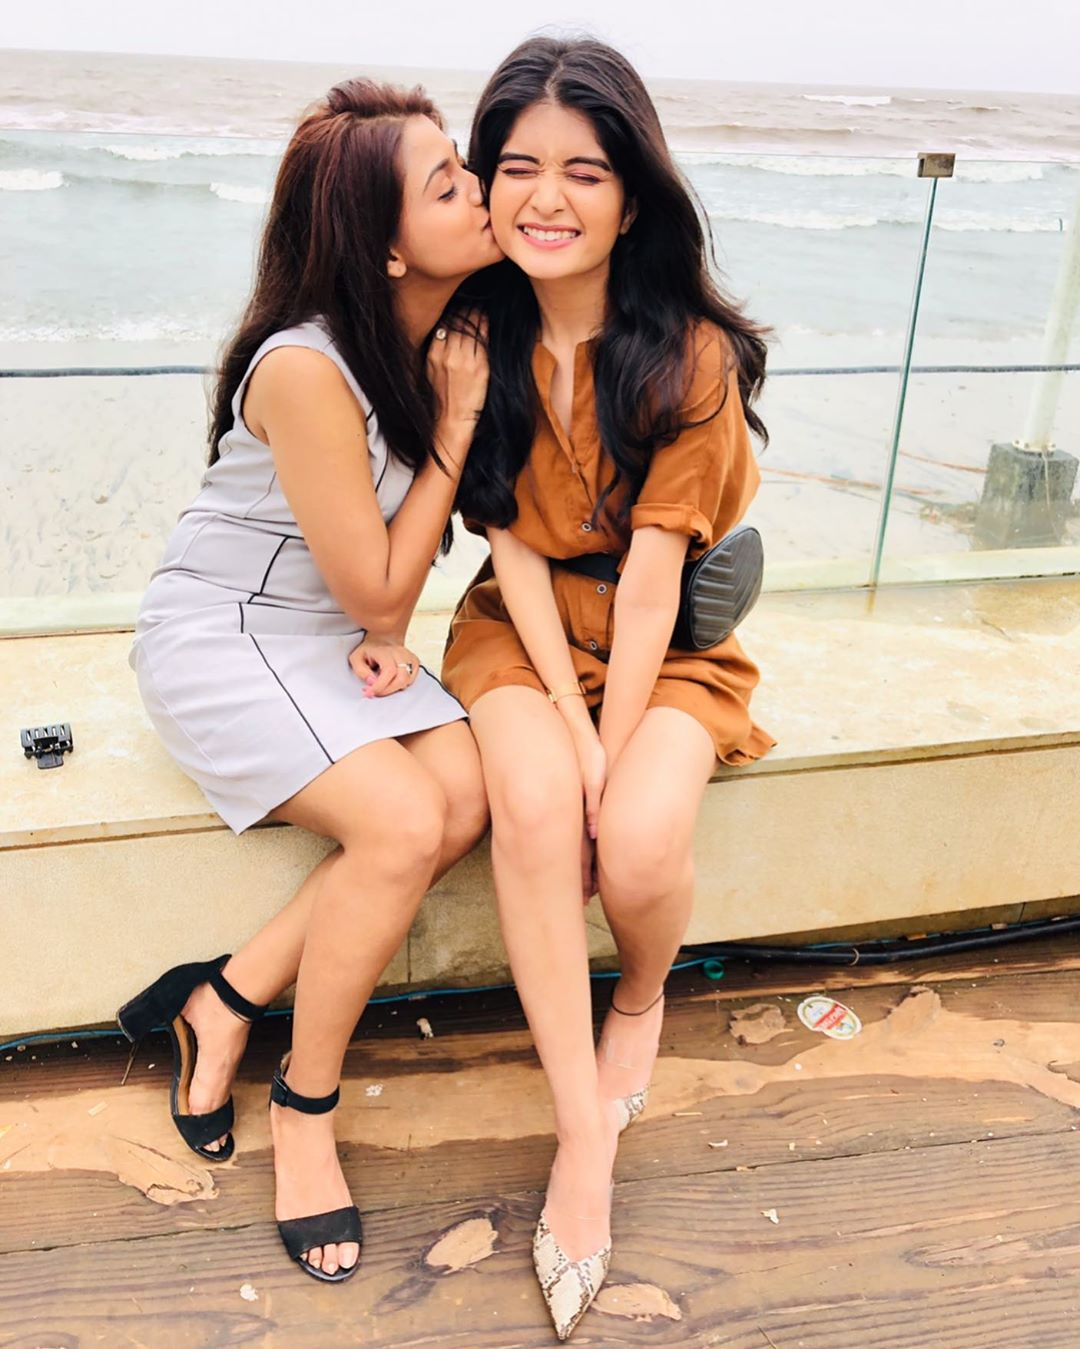 bhavika-sharma-got-an-offer-for-kissing-scene-at-a-young-age